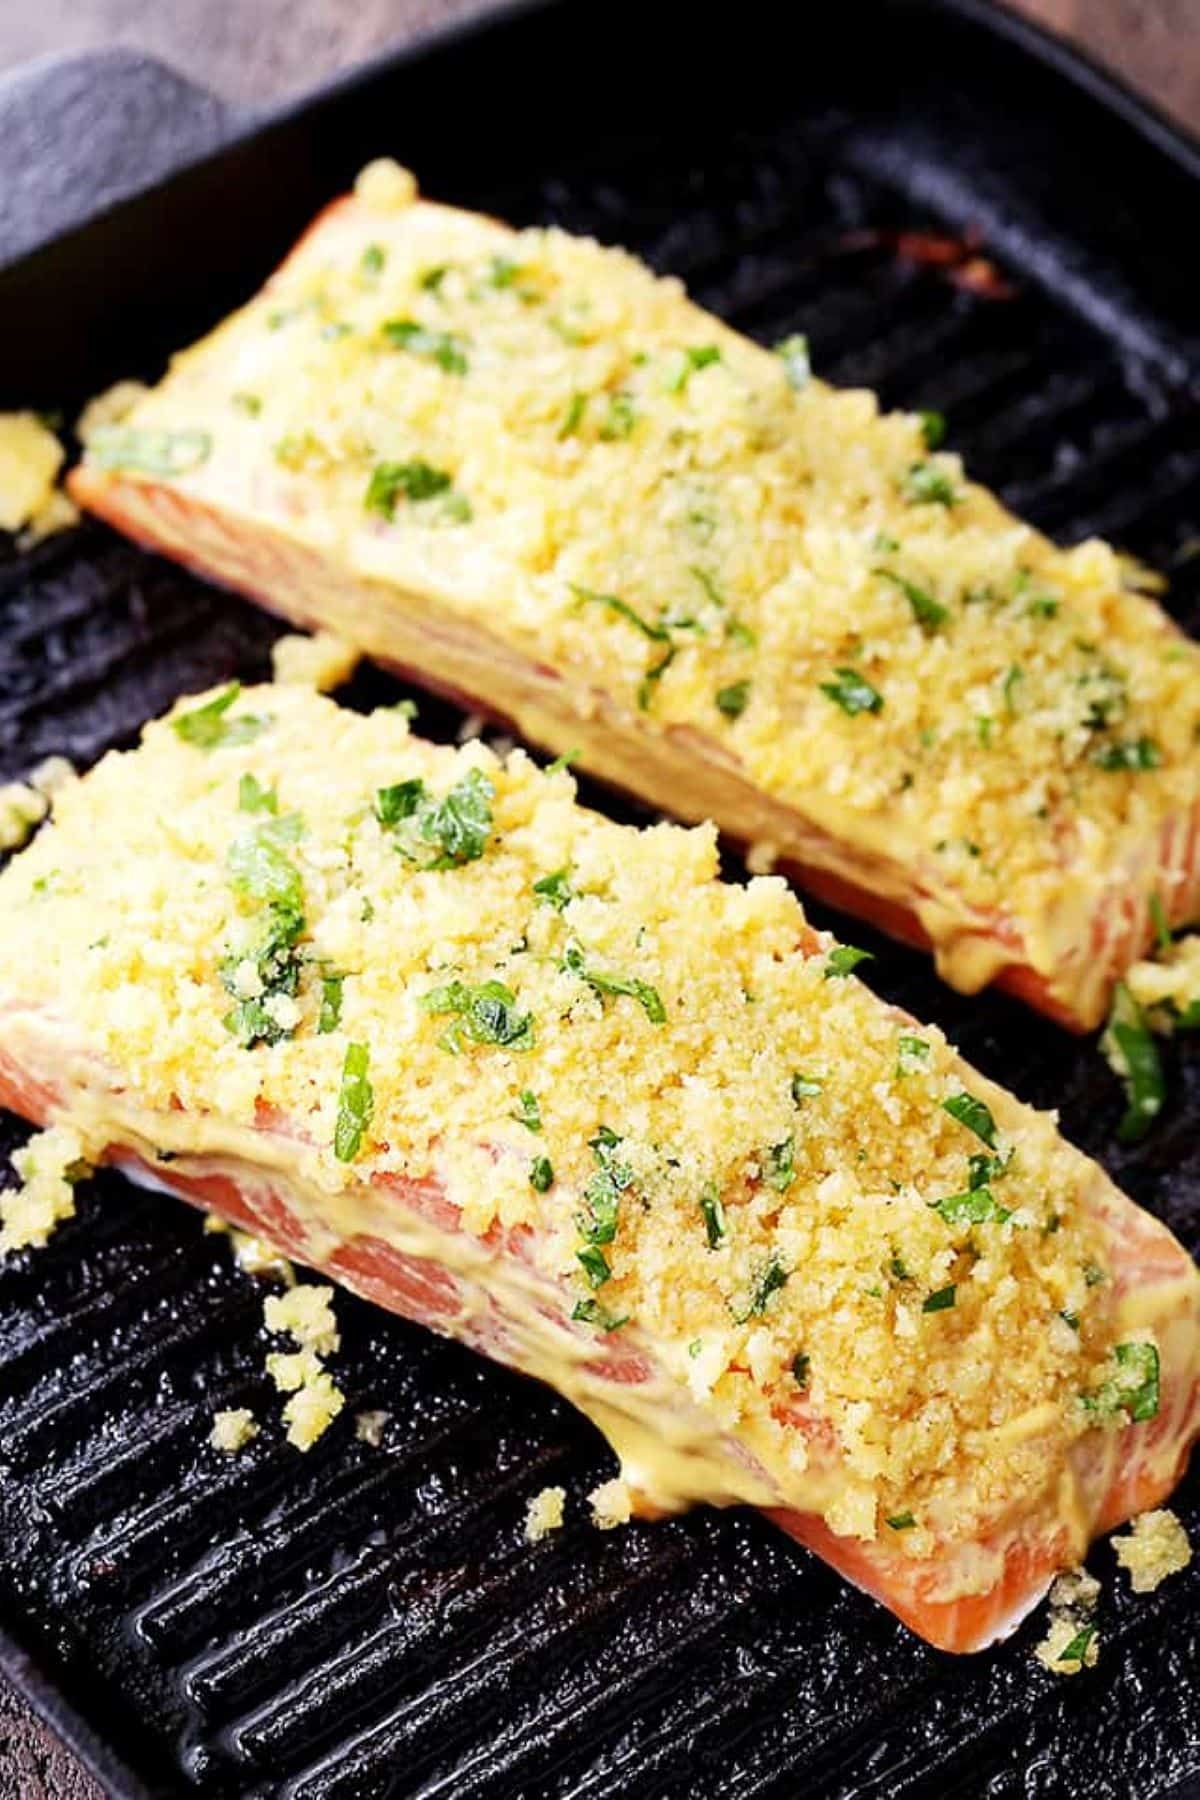 Sliced raw salmon fillets with honey mustard and panko crumbs.